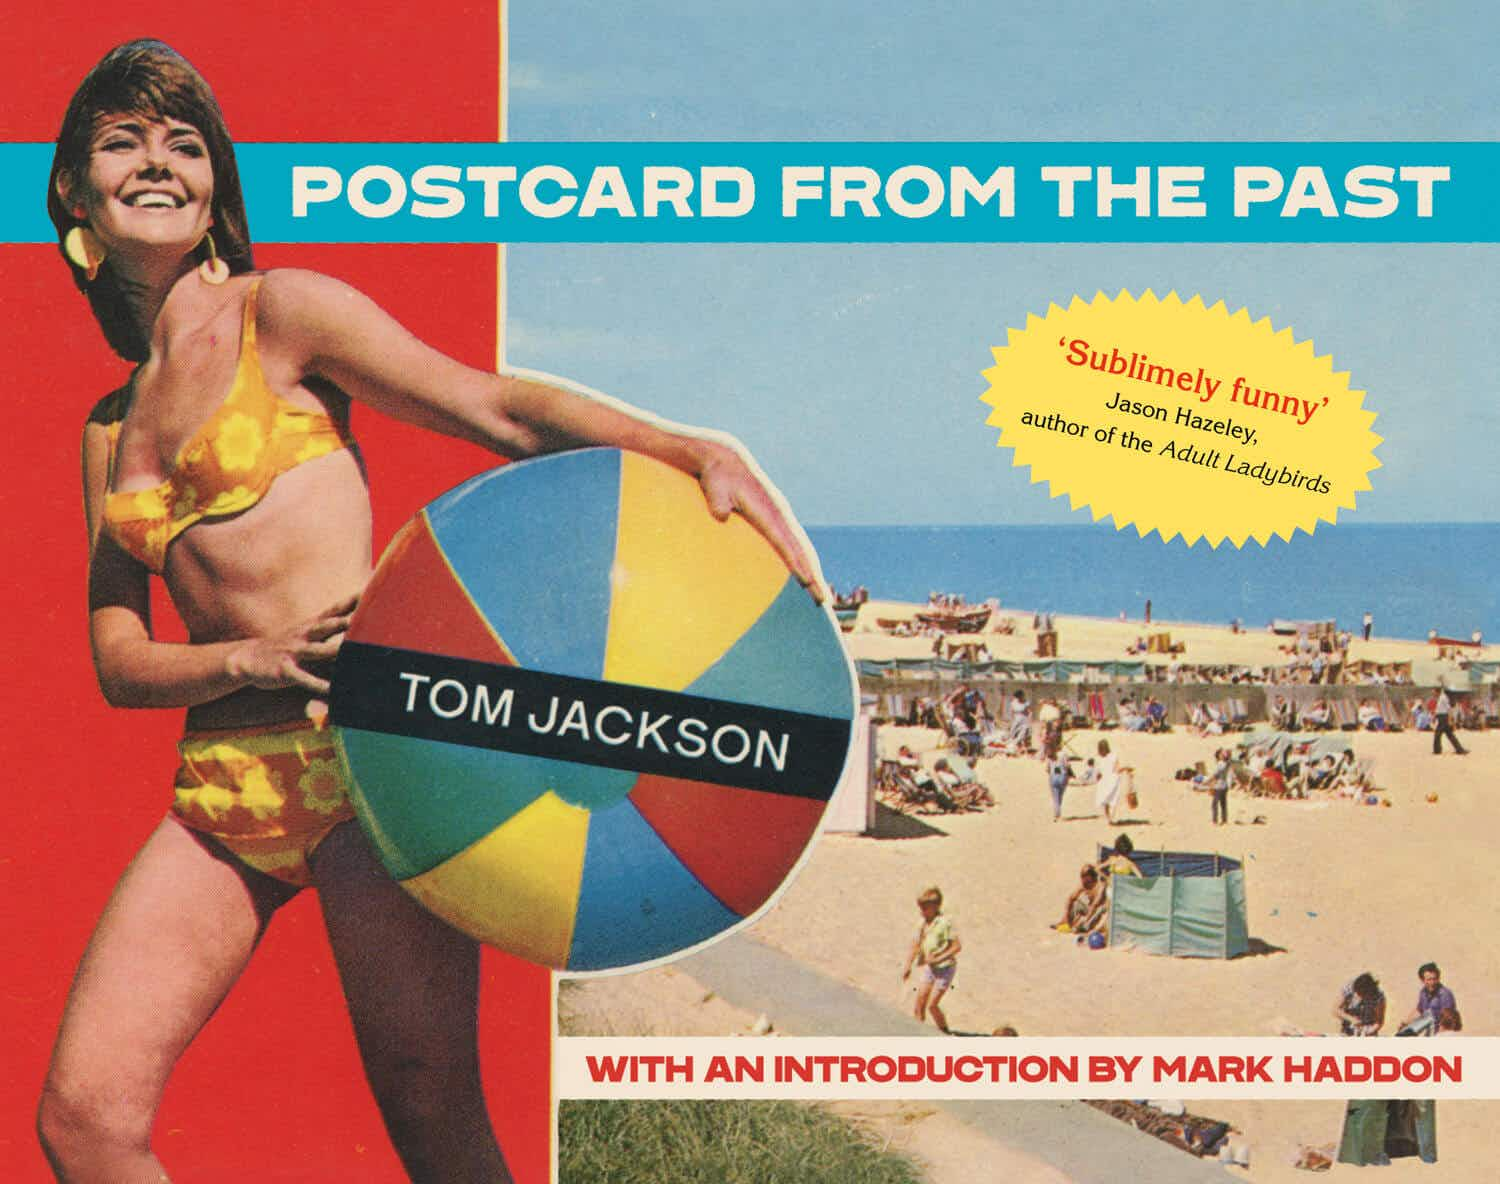 Humorous postcard collection offers amusing glimpse into the past